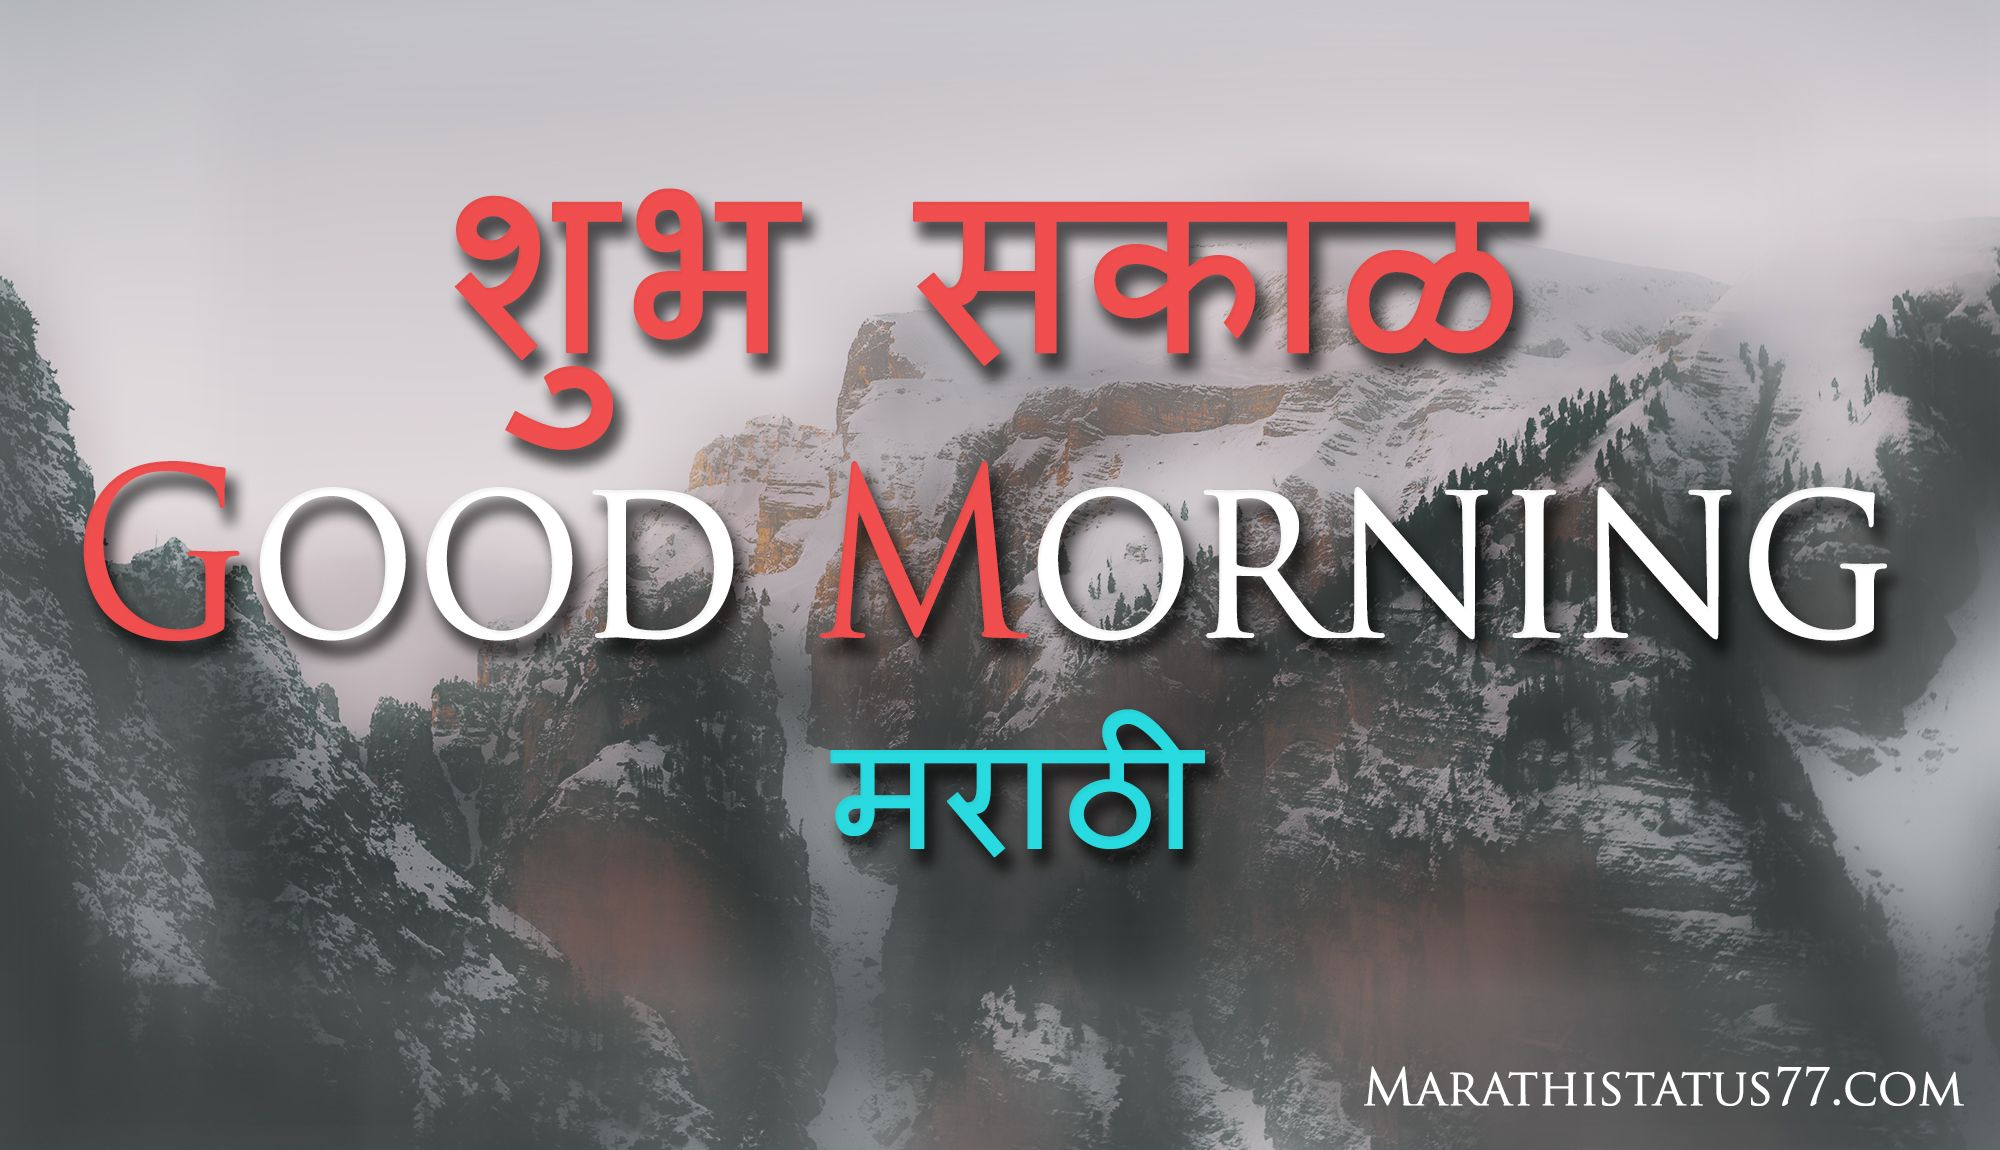 Marathi Good Morning Sms Good Morning Sms In Marathi Good Morning